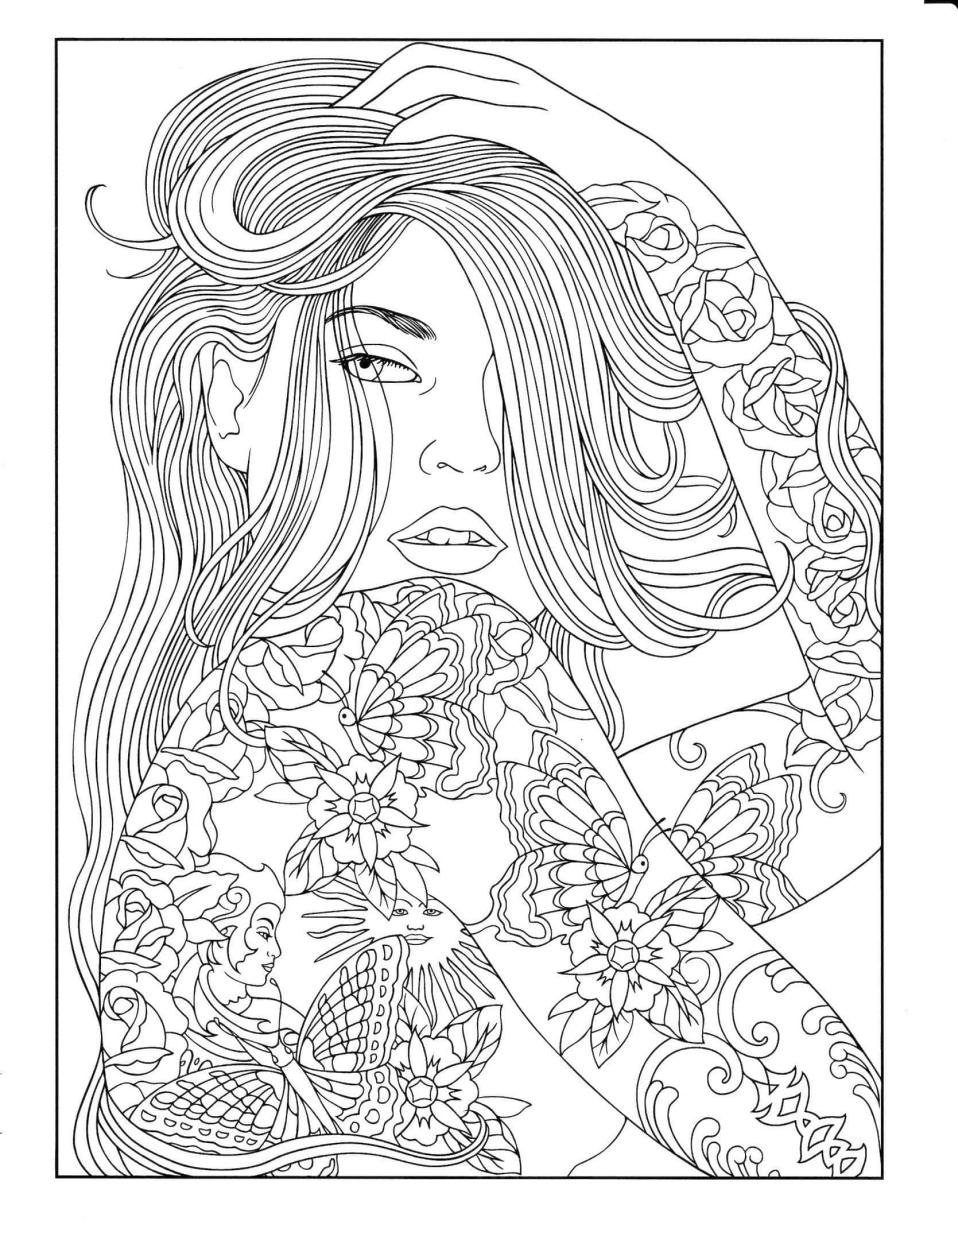 Cute and Hard Coloring Pages Girl with Tattoos